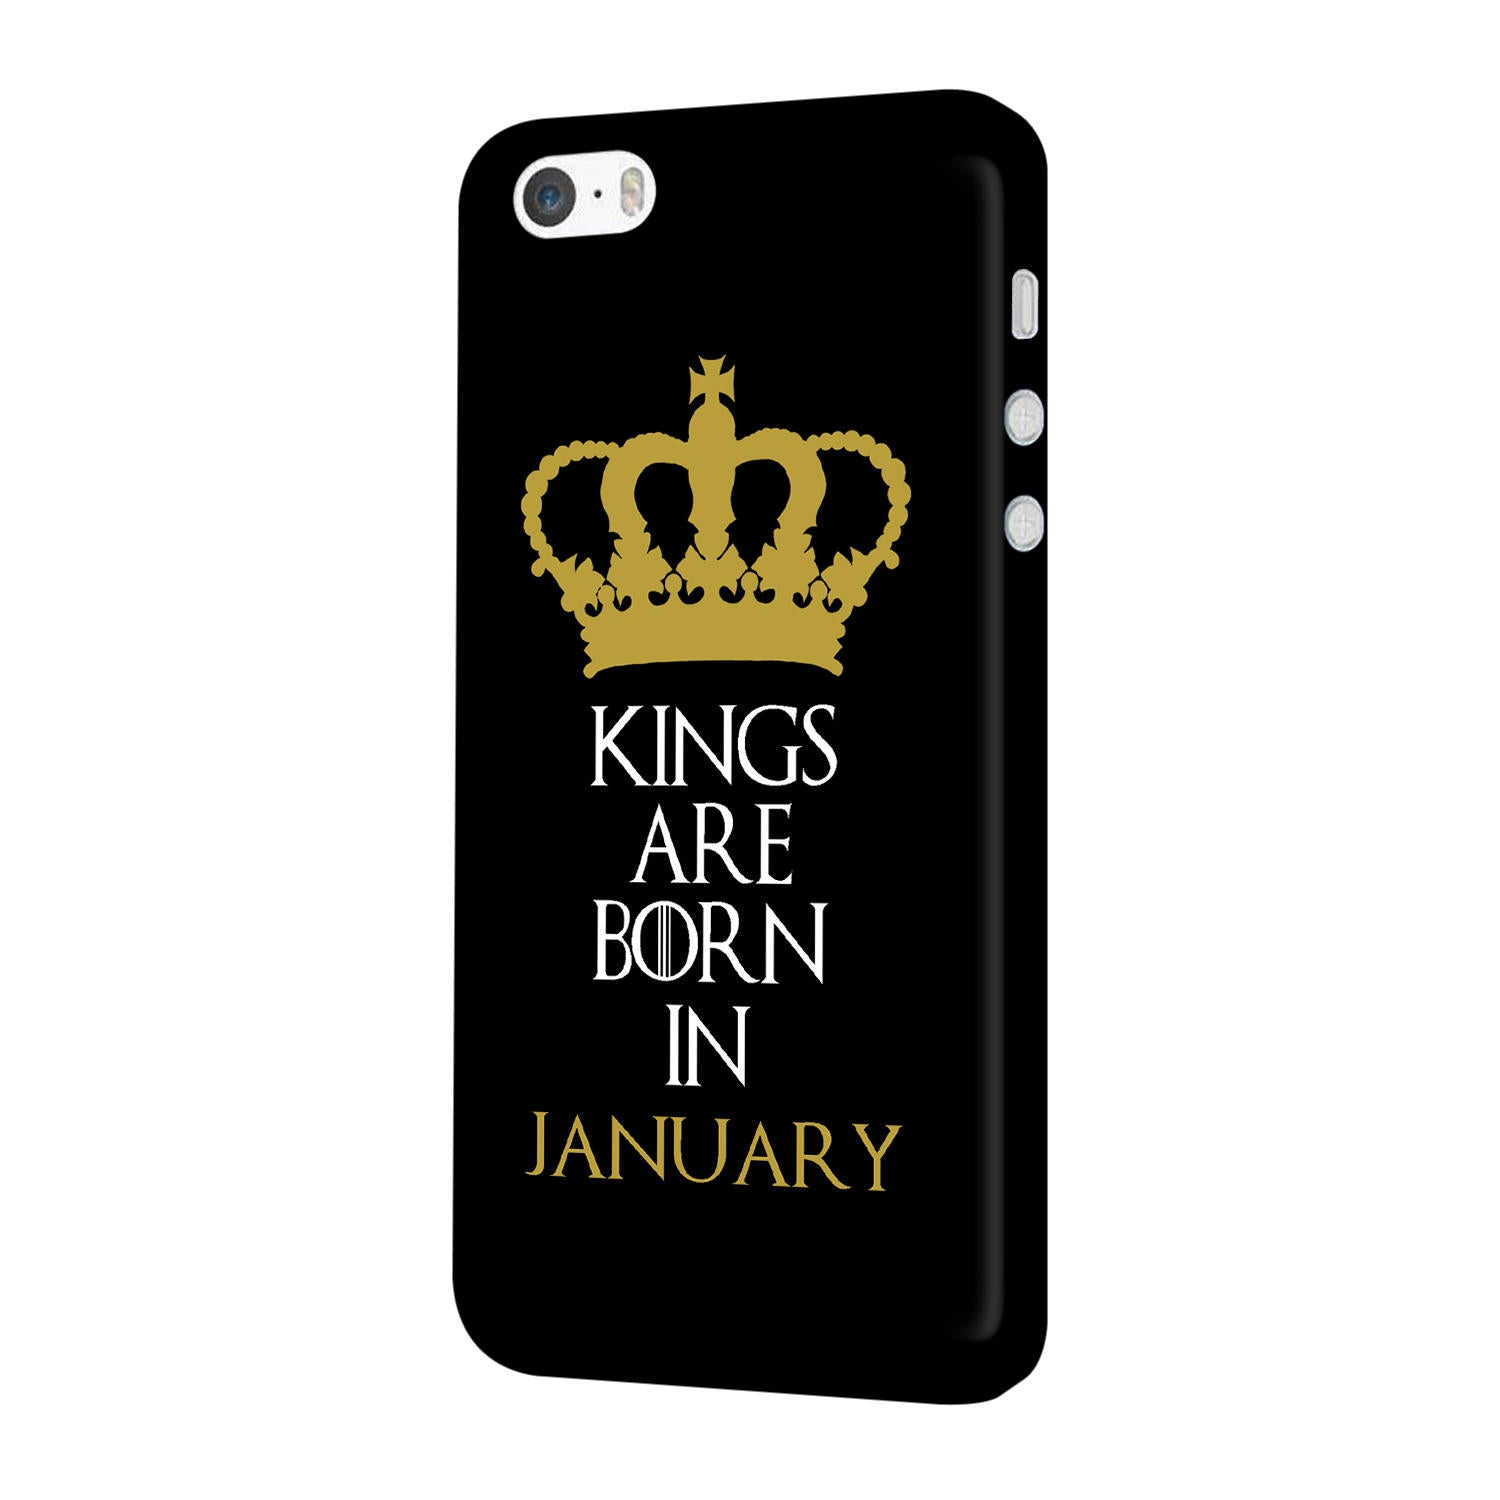 Kings January iPhone 5 Mobile Cover Case - MADANYU